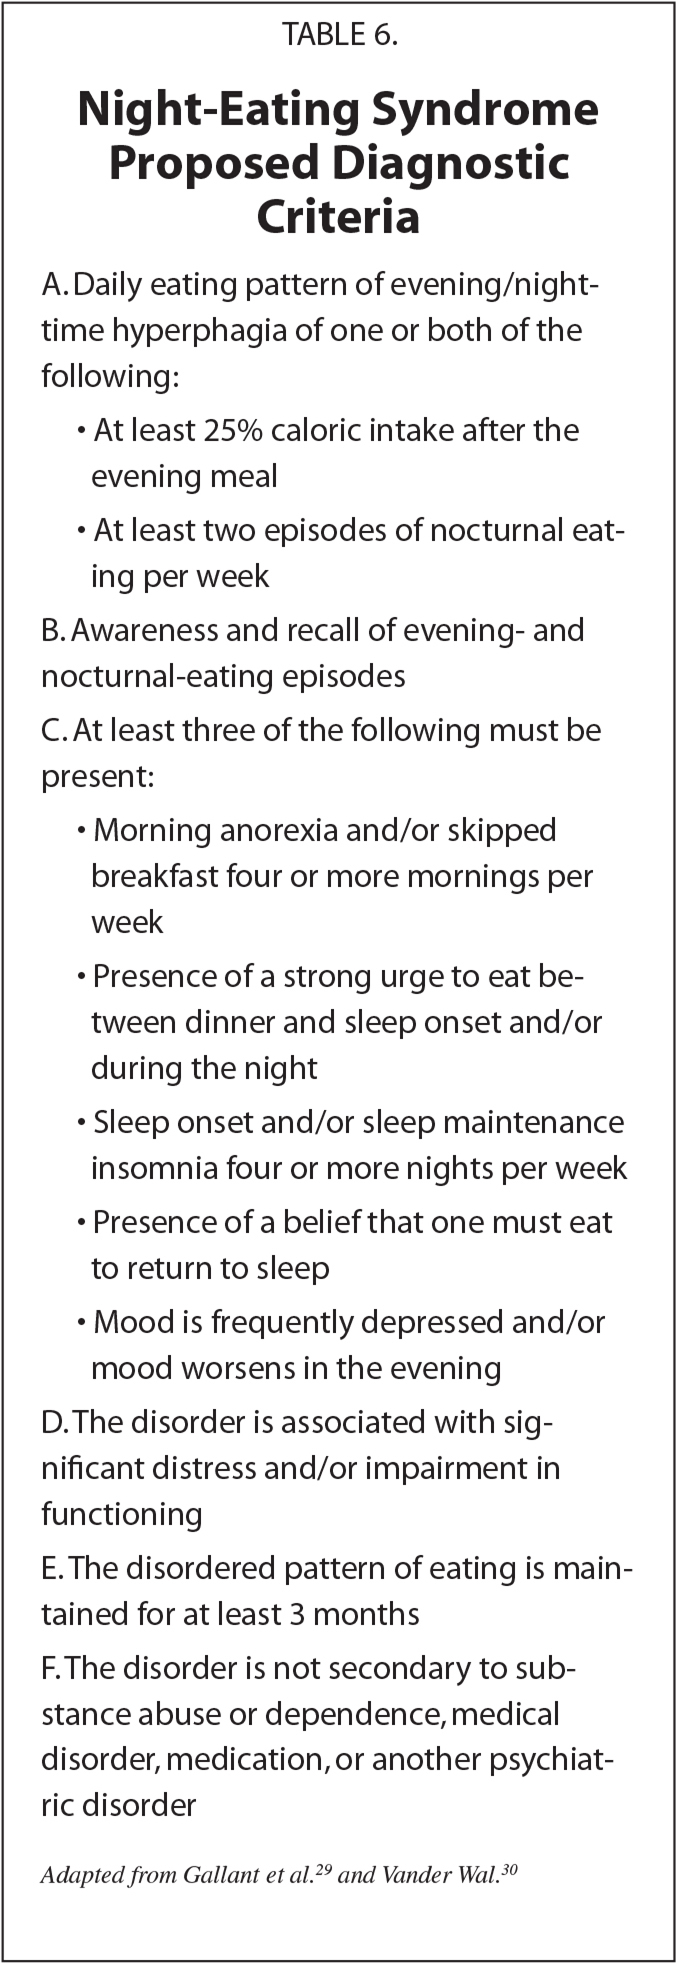 Night-Eating Syndrome Proposed Diagnostic Criteria